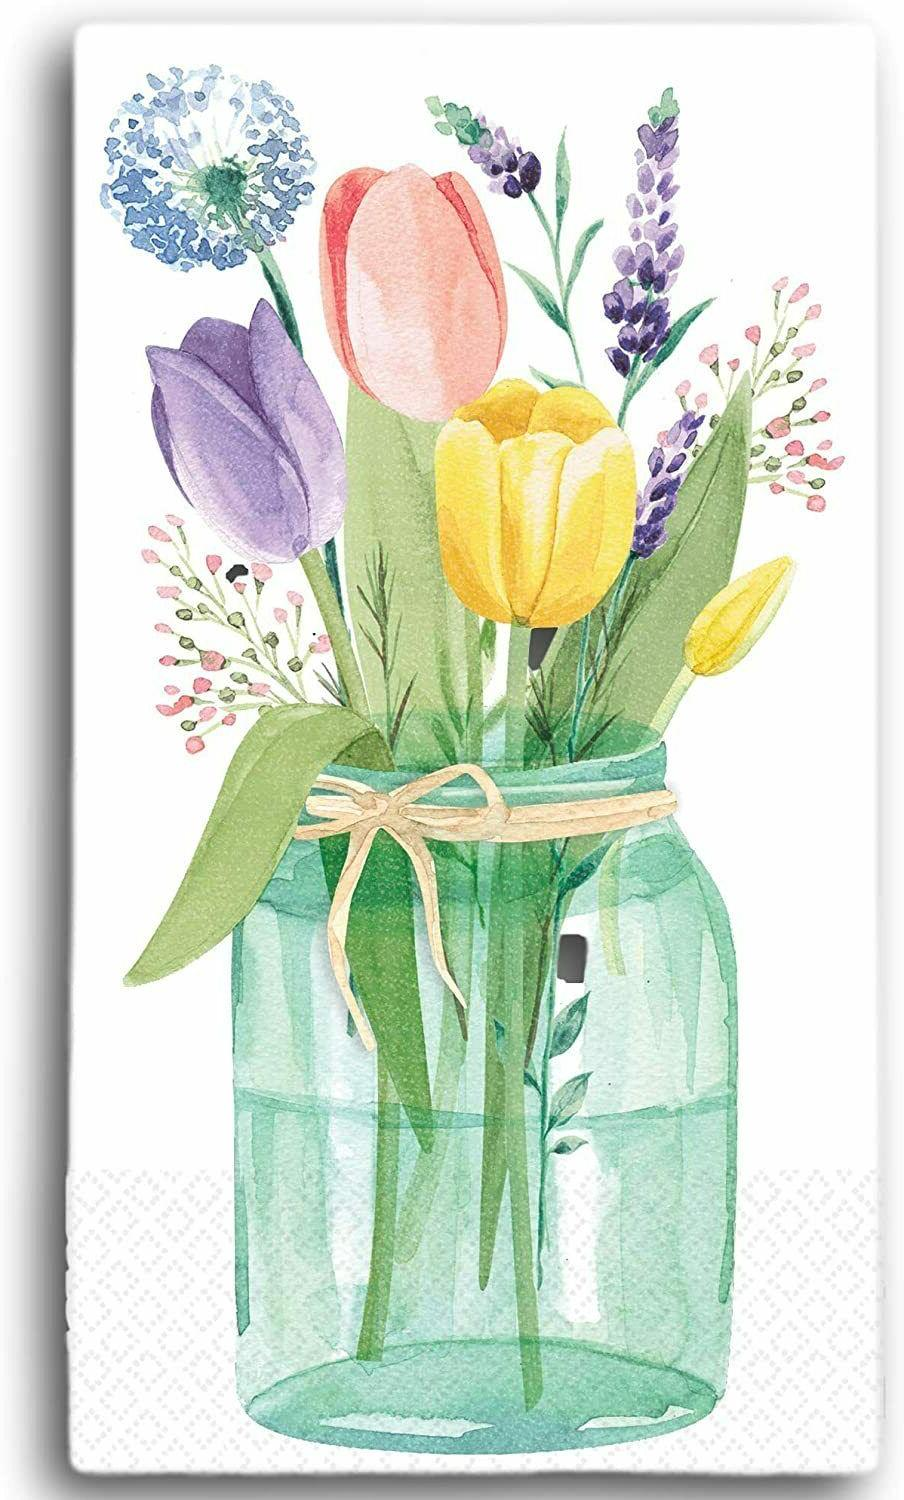 32 Count Paper GUEST ~Tulips, Home/Happy